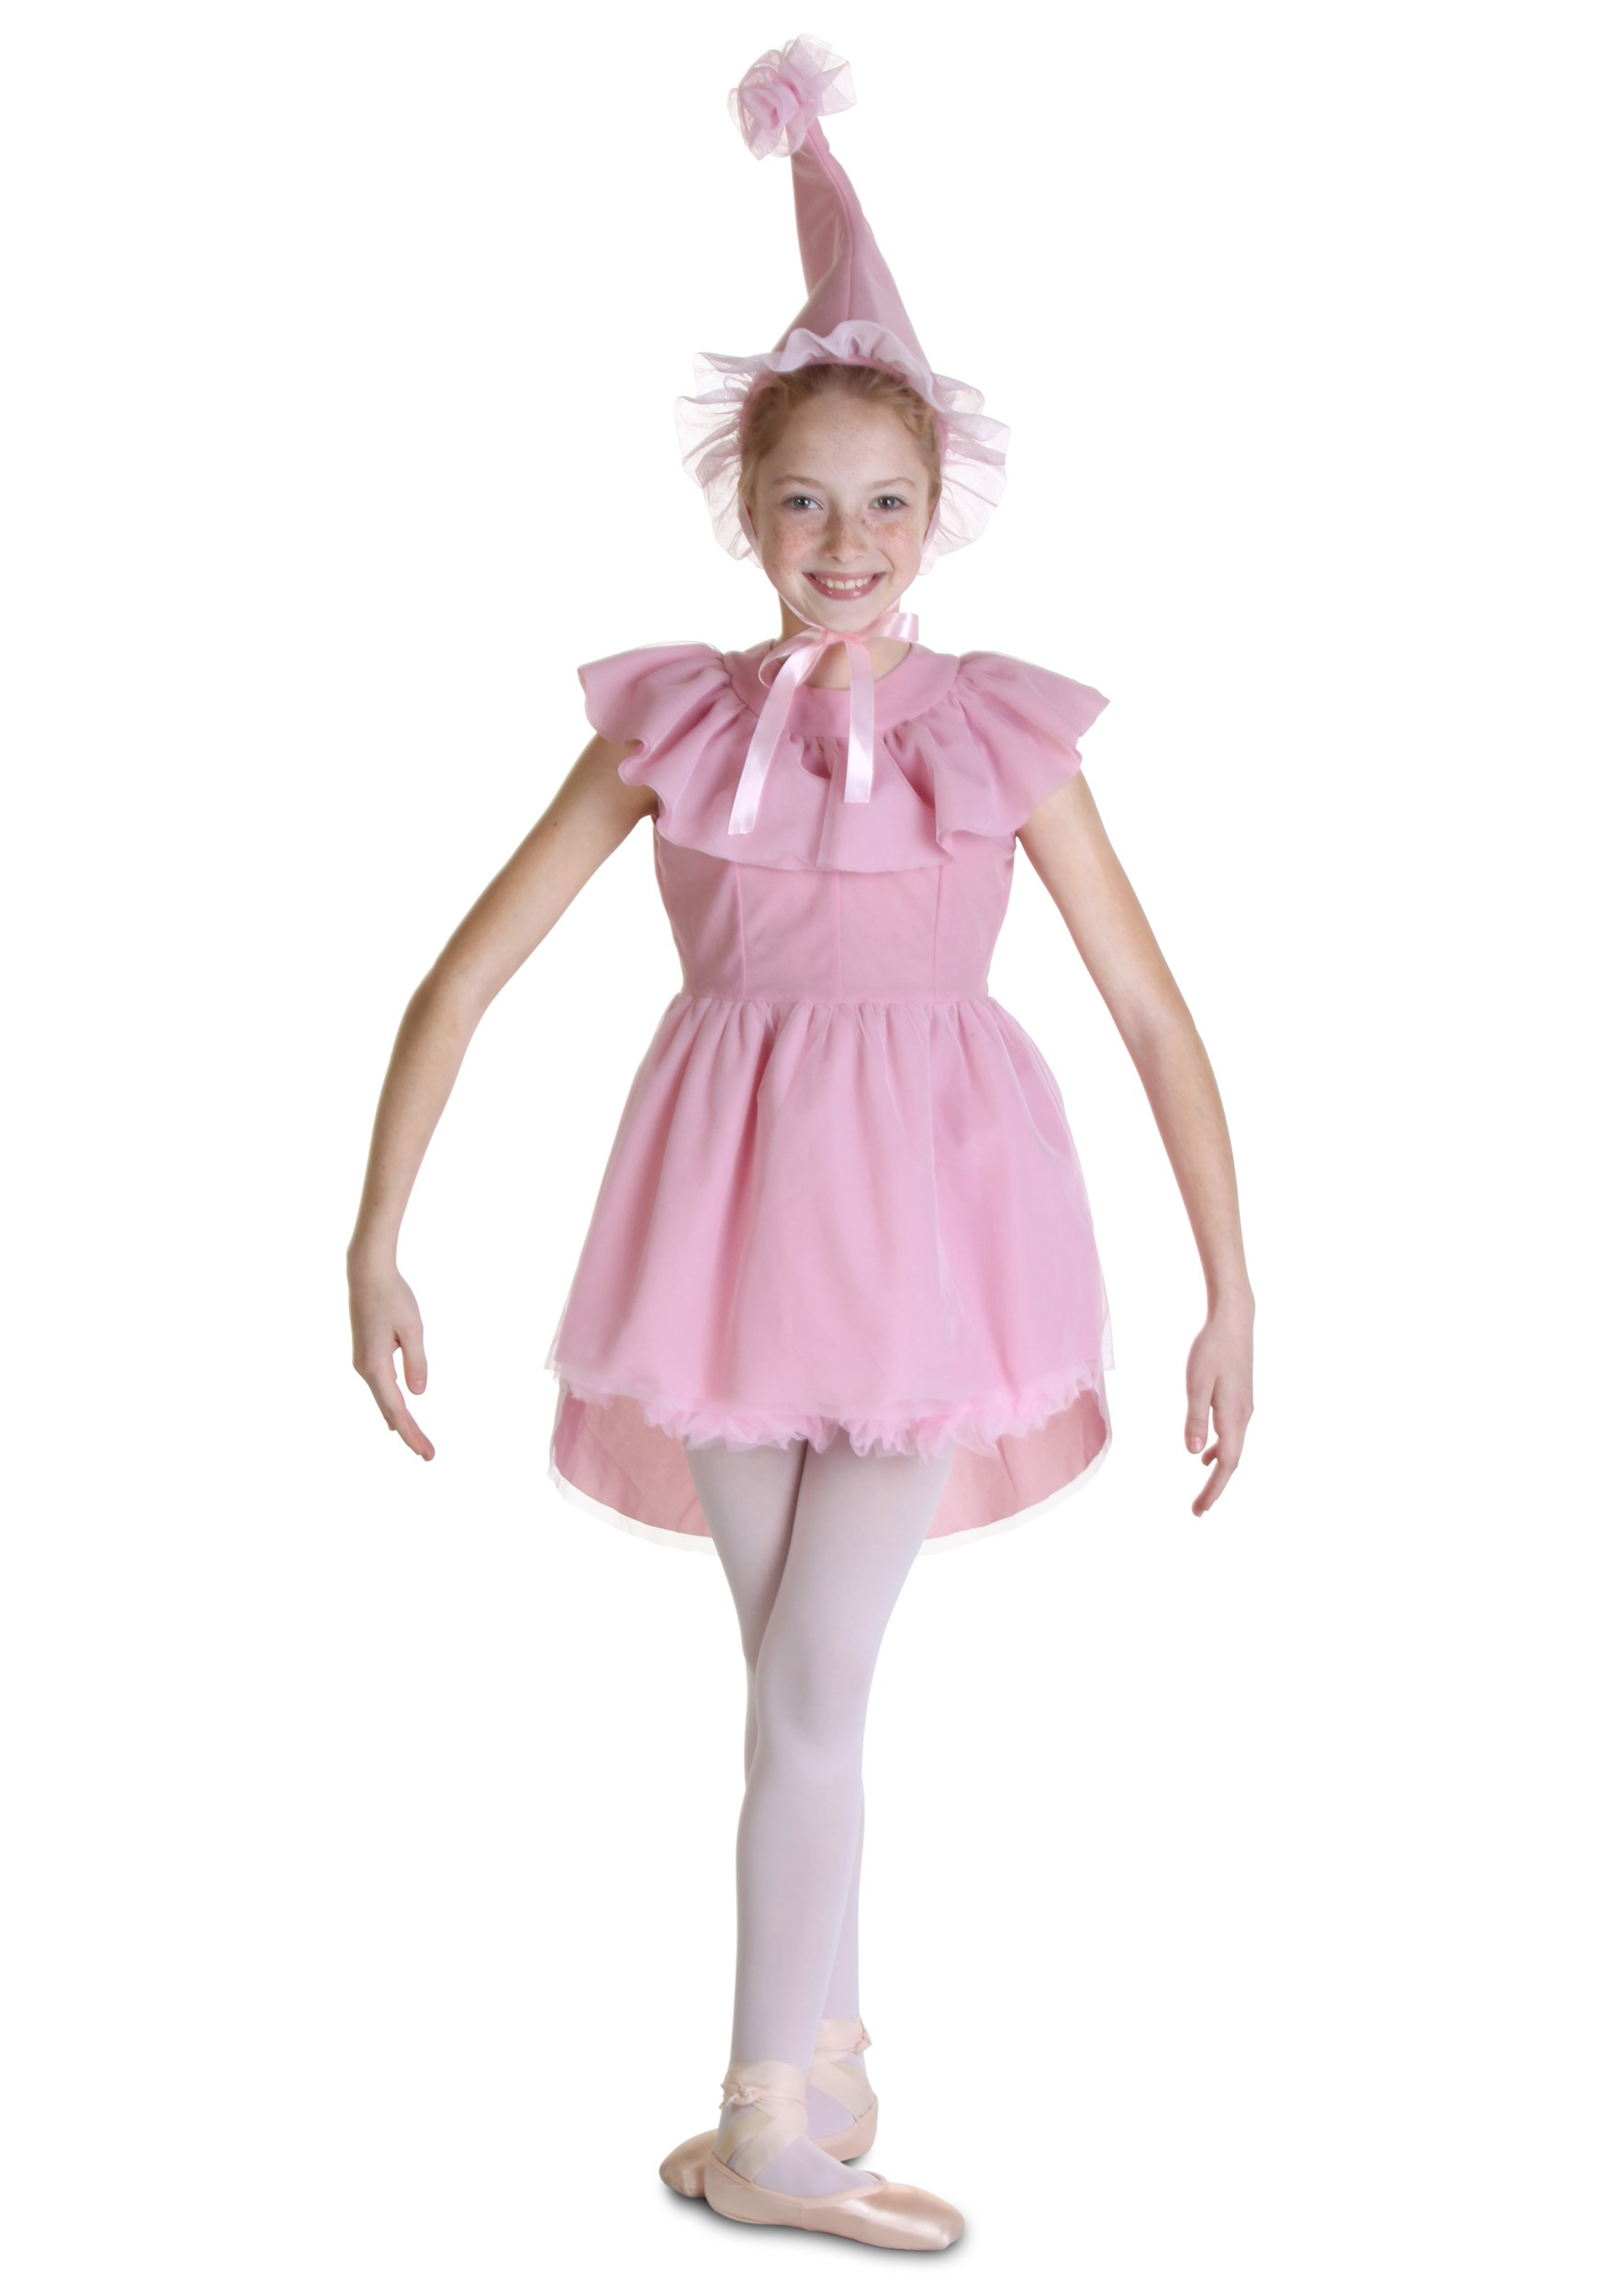 the wizard of oz costumes halloween cosplay party costumes children princess ballet tutu dance dress stage - Halloween Ballet Costumes